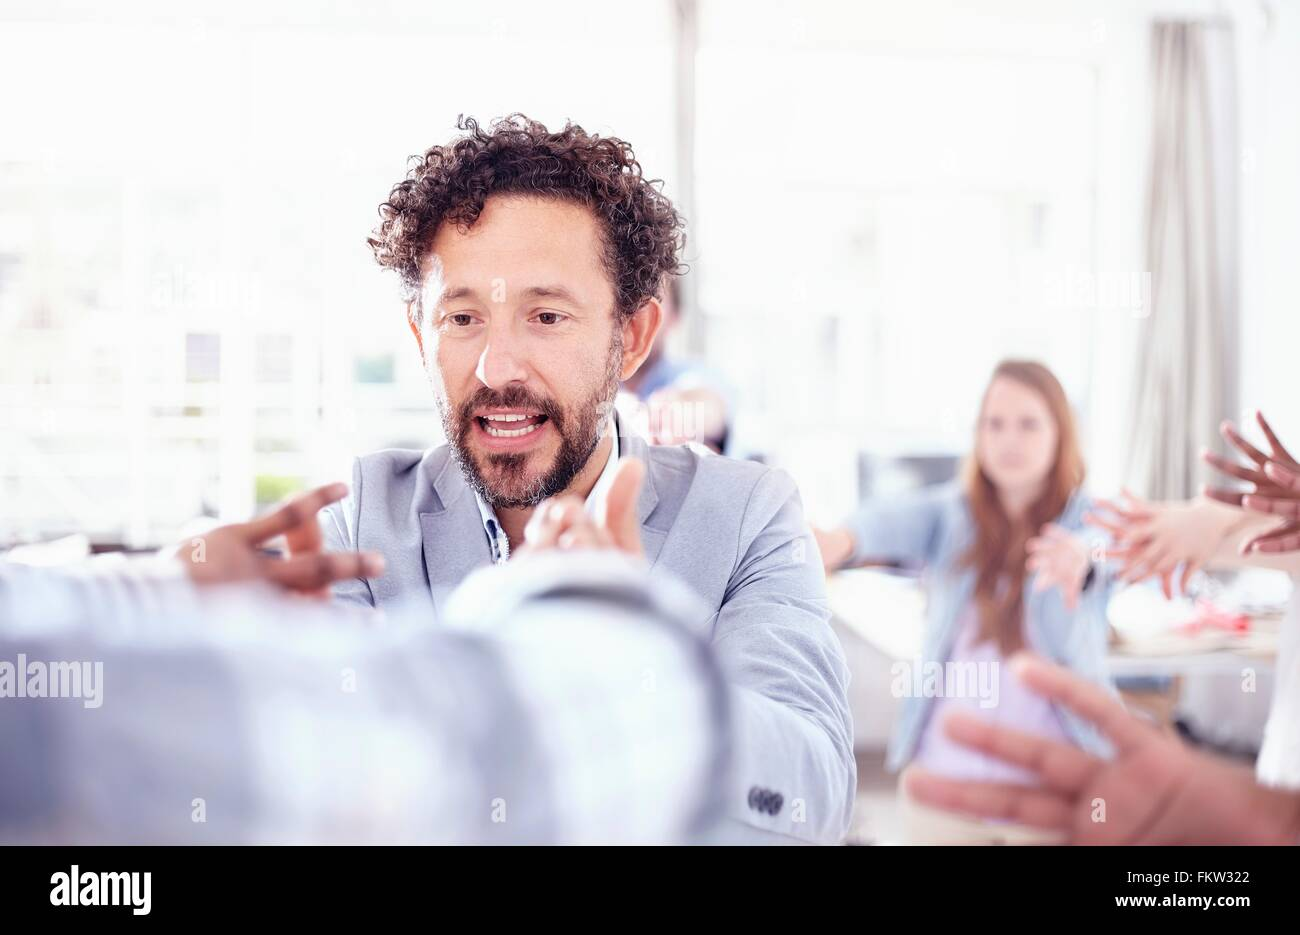 Bearded mature man in team building talk hands raised smiling - Stock Image